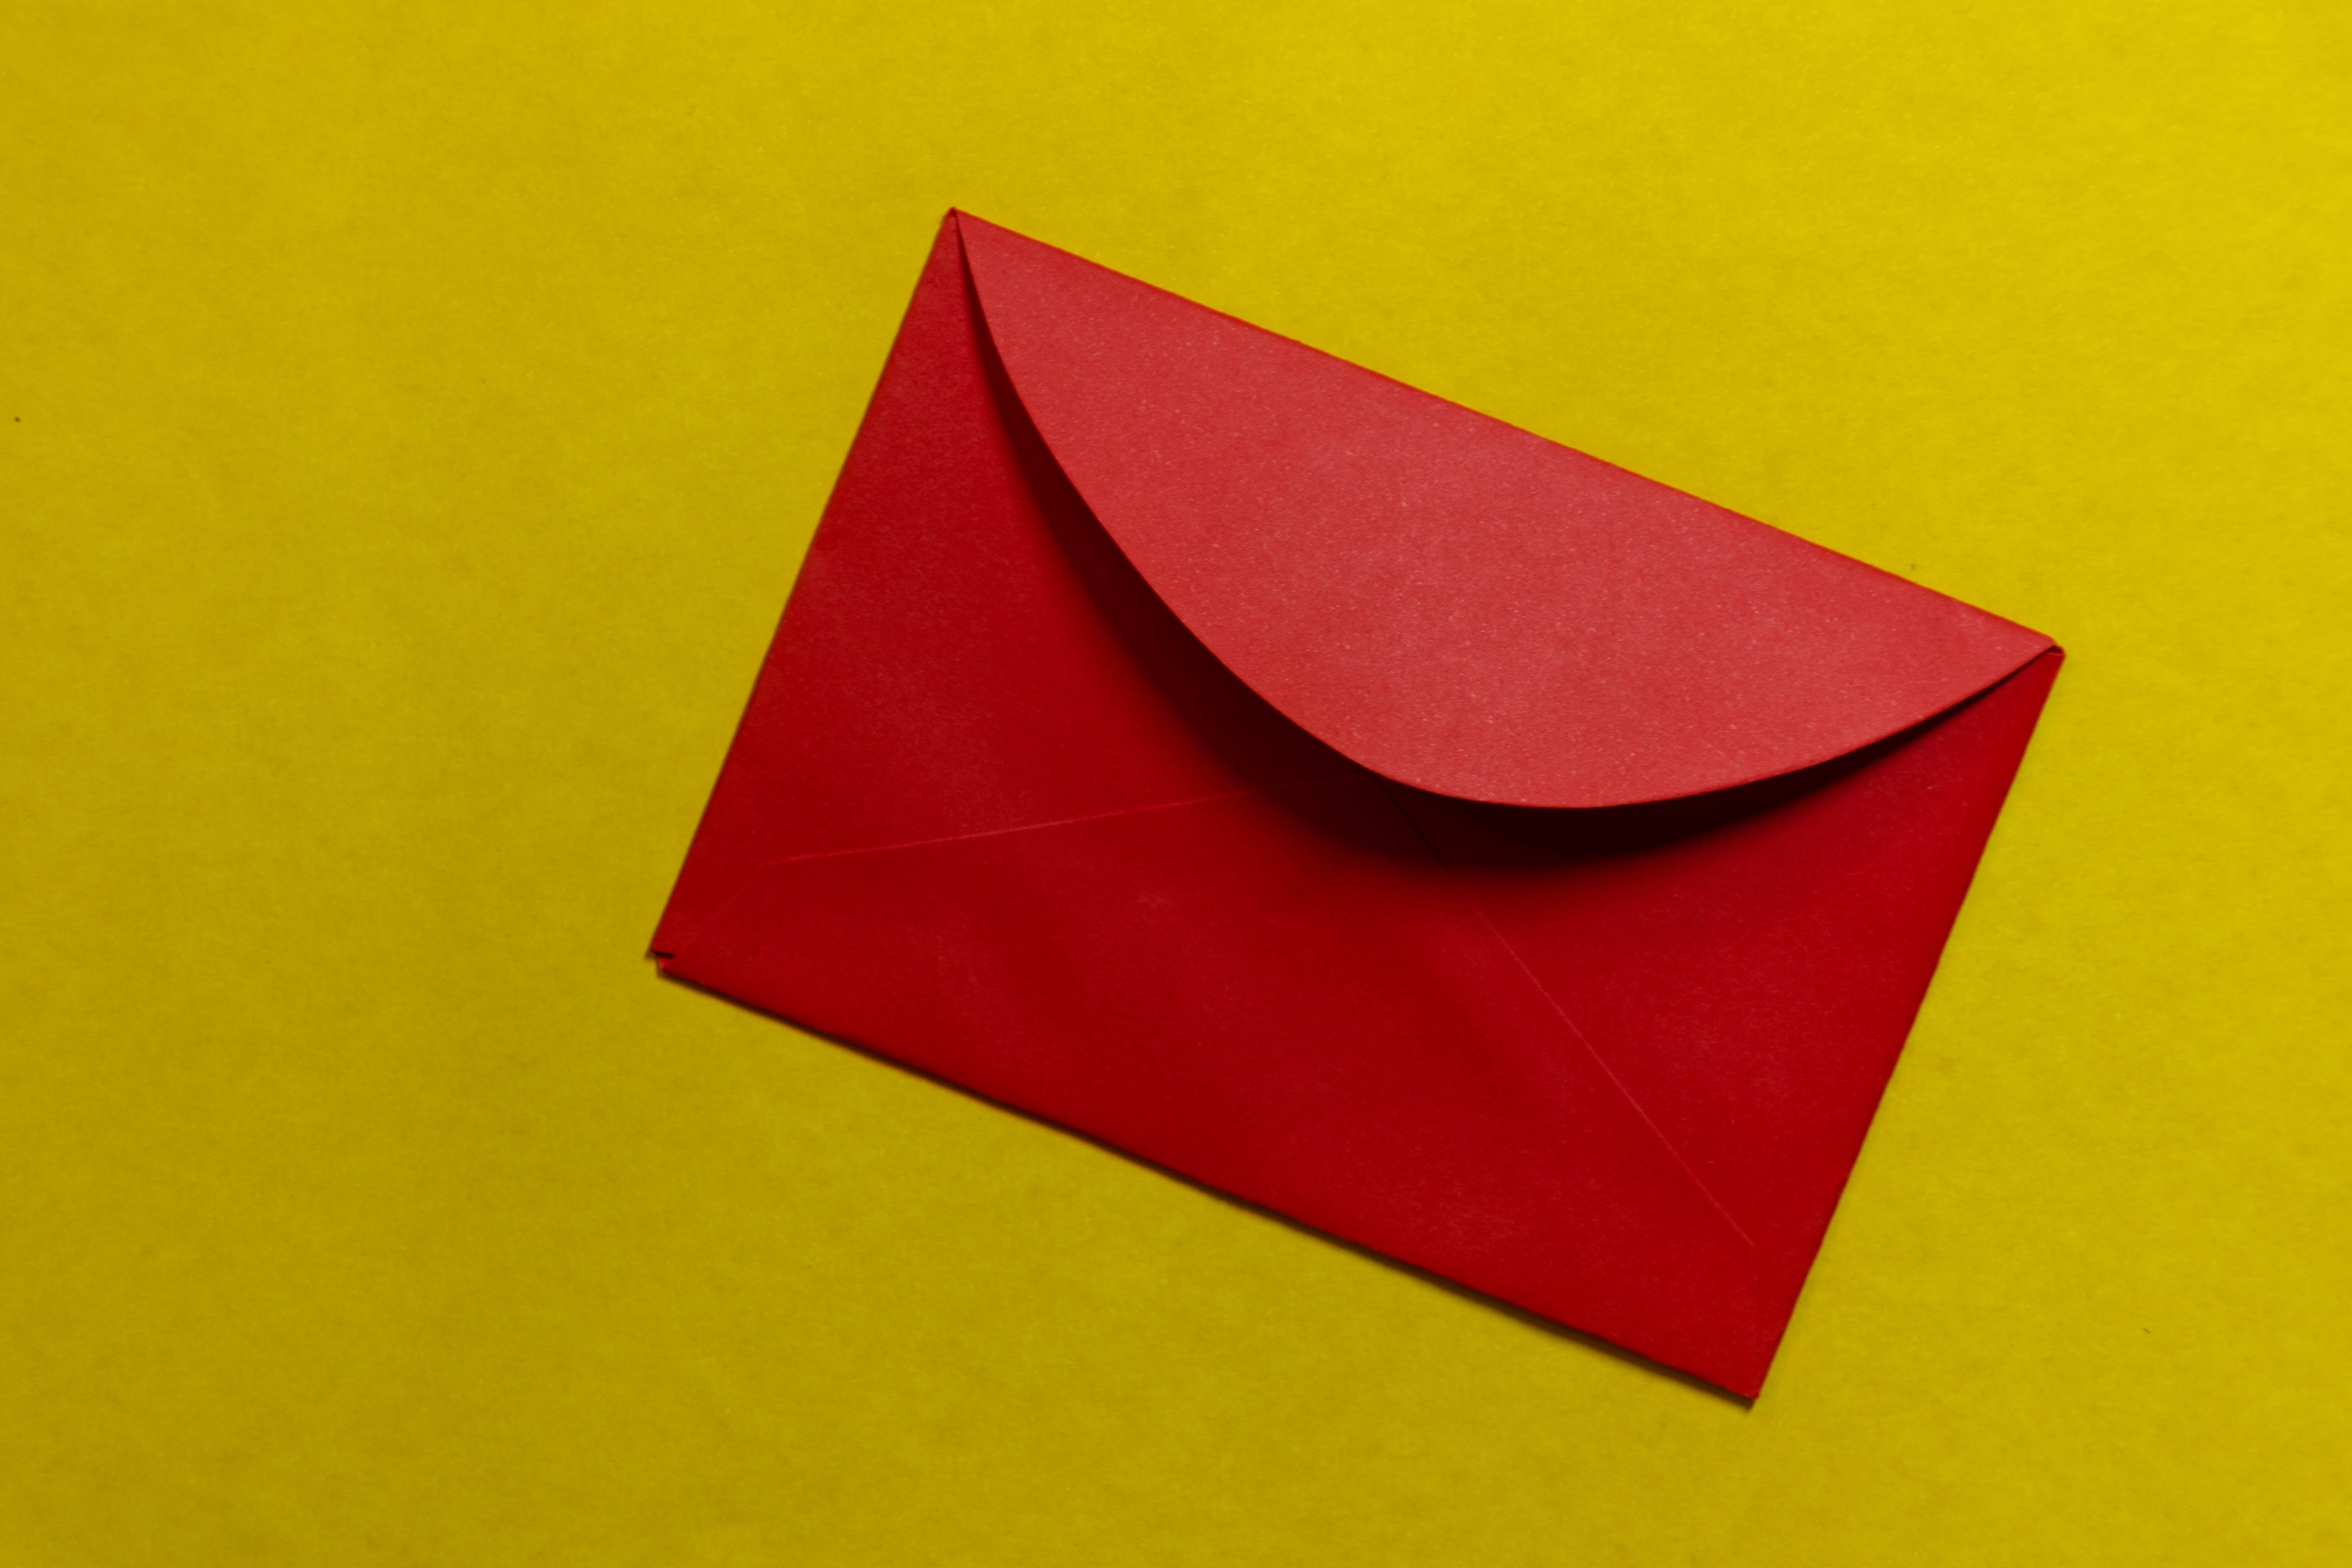 image of a red letter to represent Information Subpoena Restraining Notice